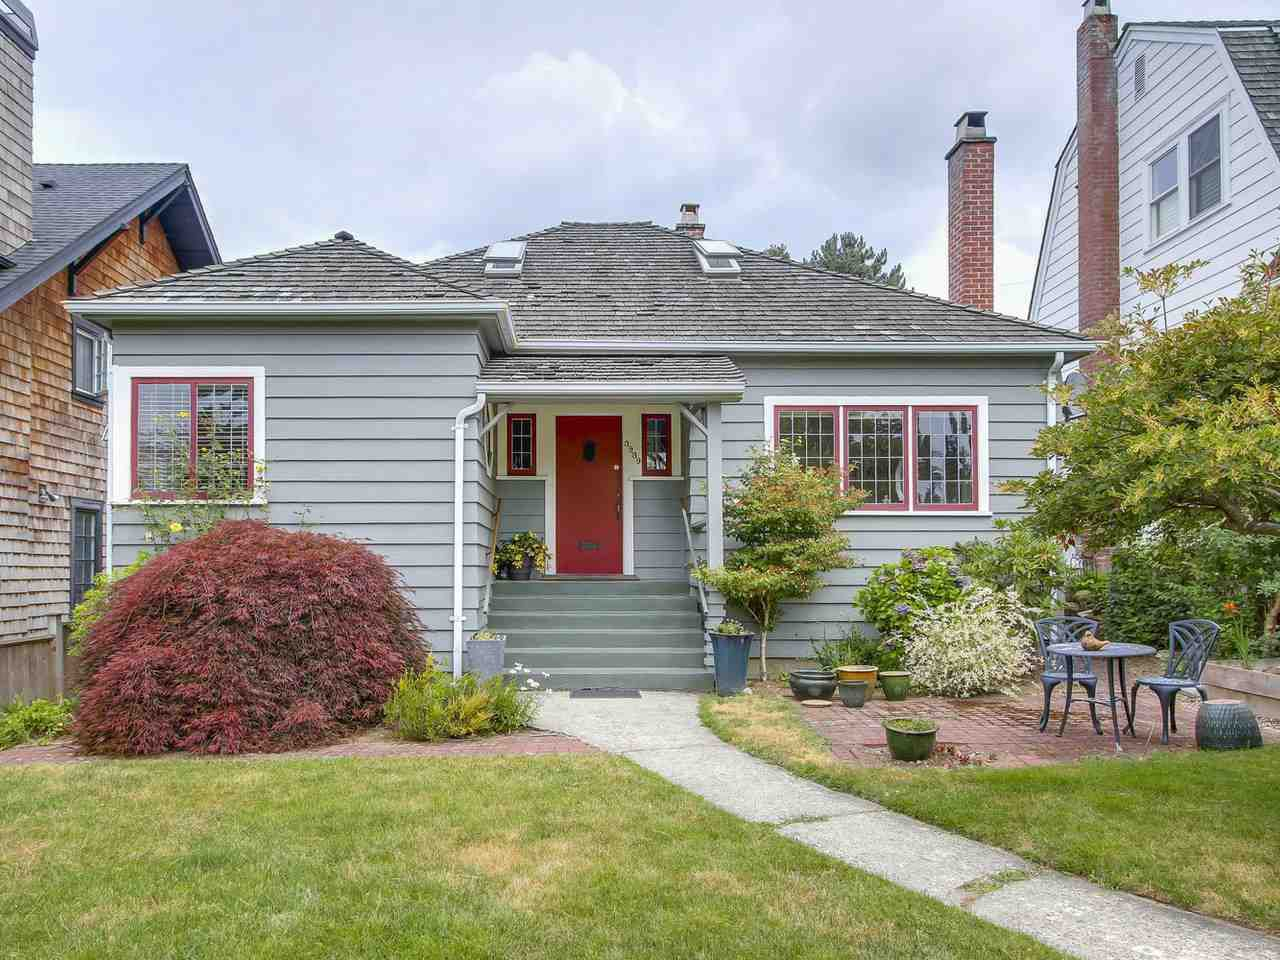 Main Photo: 3939 W KING EDWARD Avenue in Vancouver: Dunbar House for sale (Vancouver West)  : MLS®# R2191736